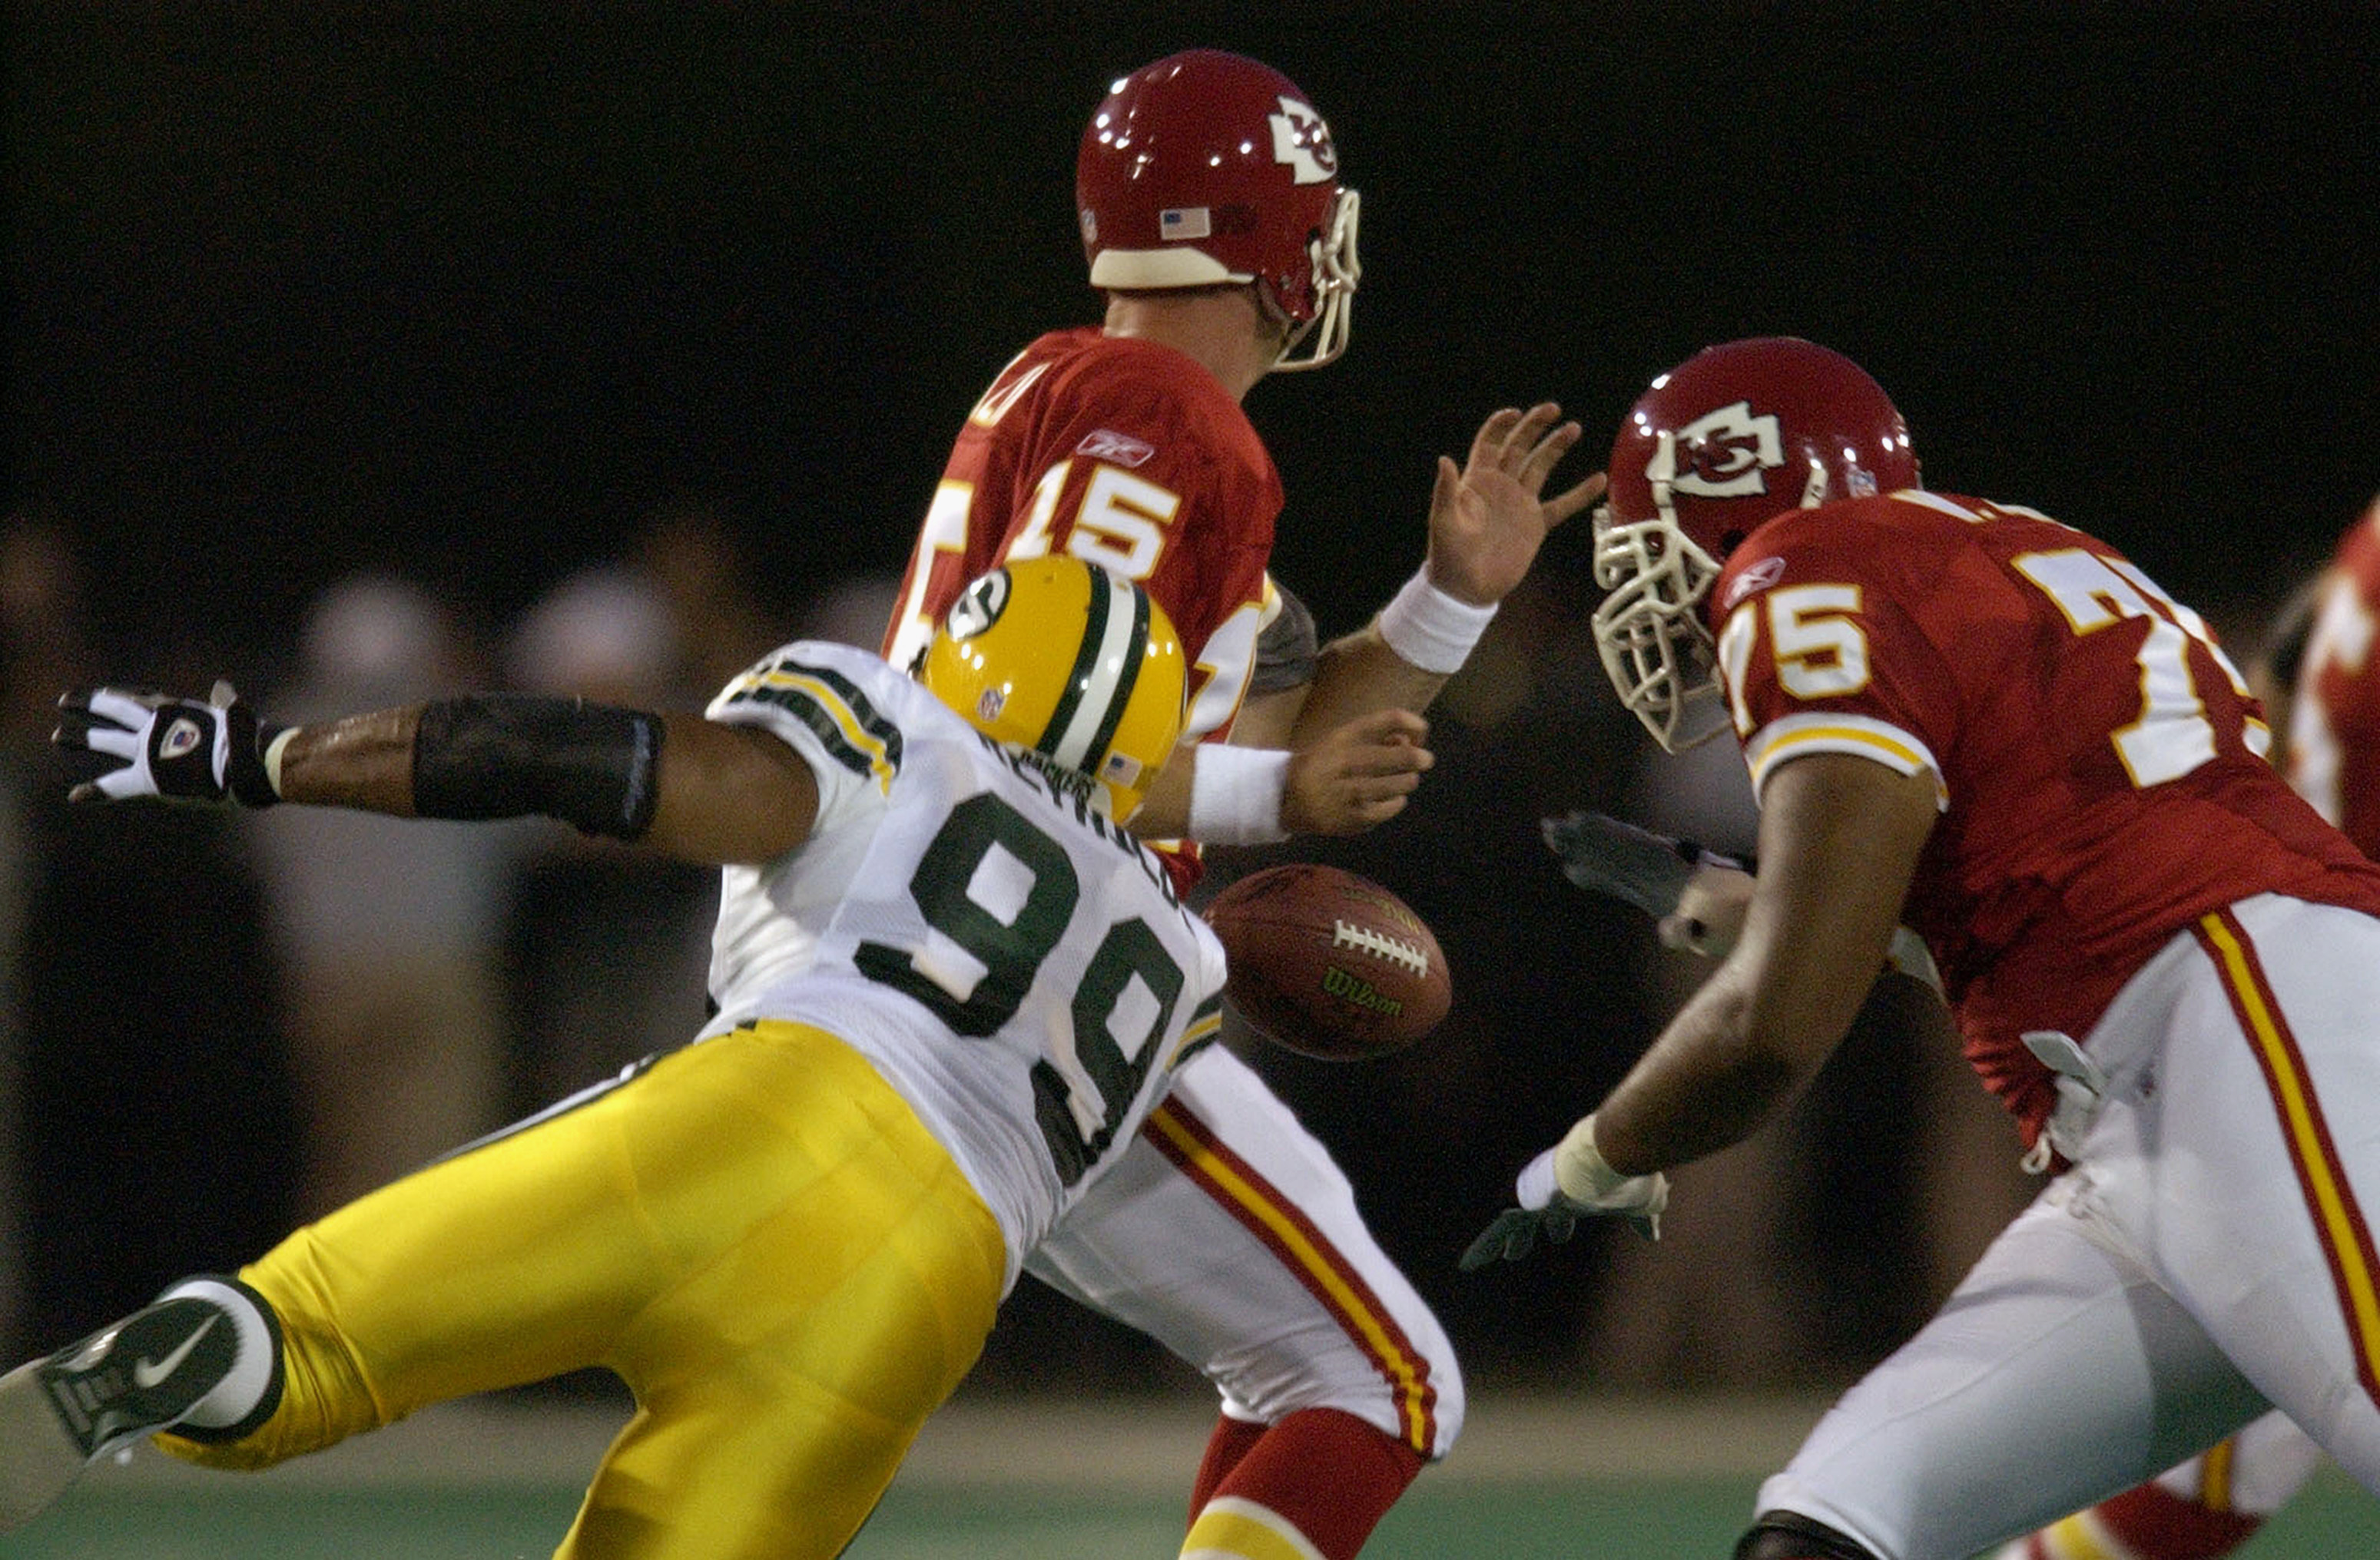 Draft Bust Jamal Reynolds Registered Just 3 Sacks in 3 Years for the Green Bay Packers